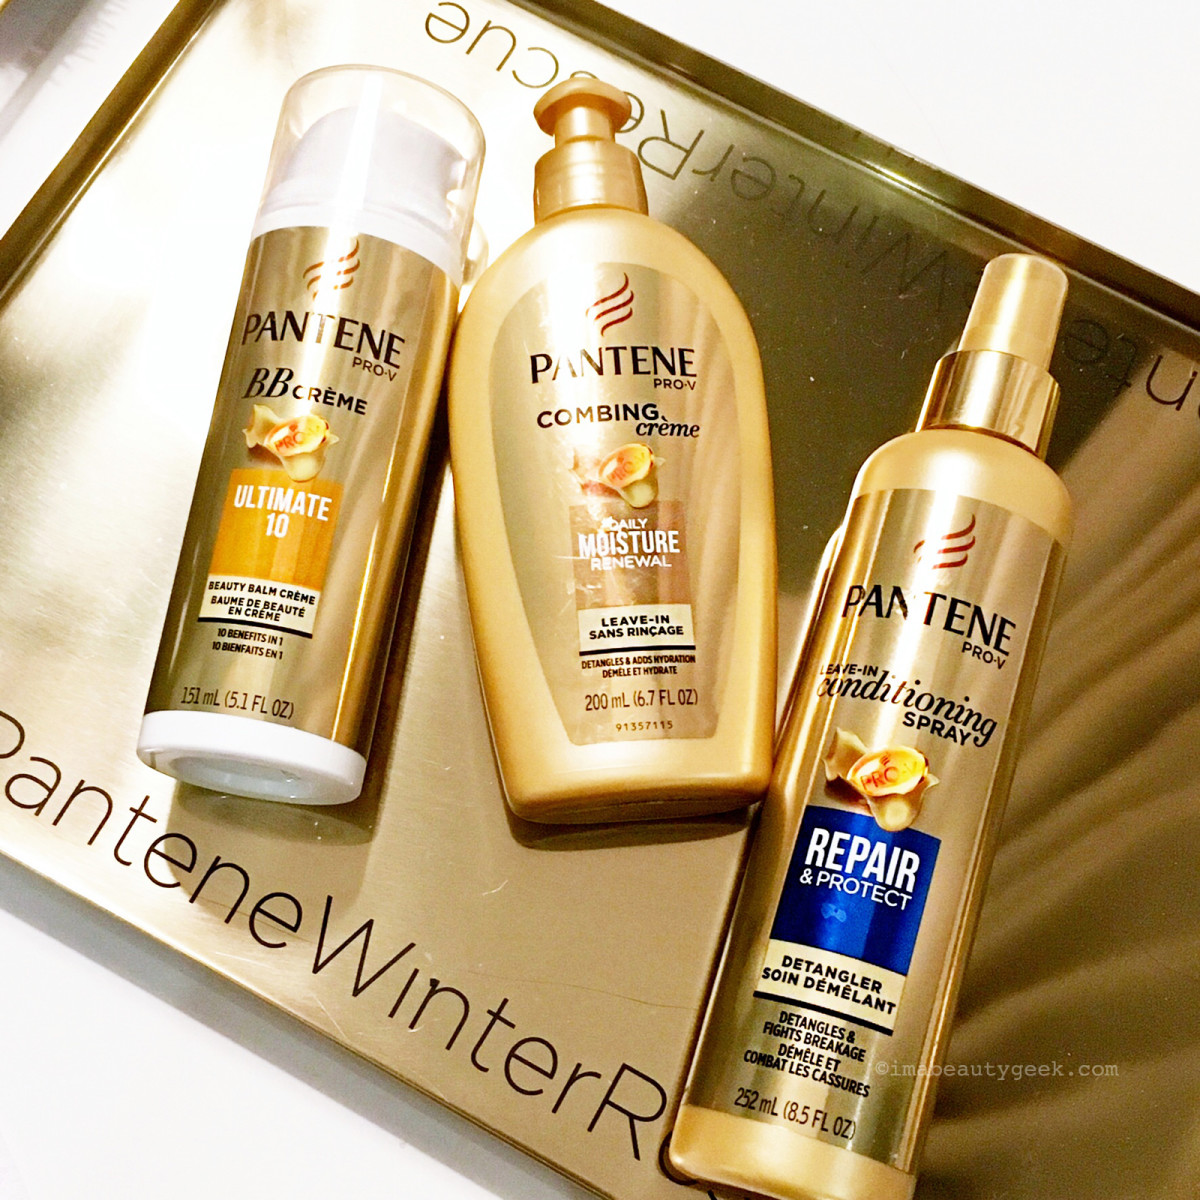 Pantene BB Creme, Combing Cream and Conditioning Spray